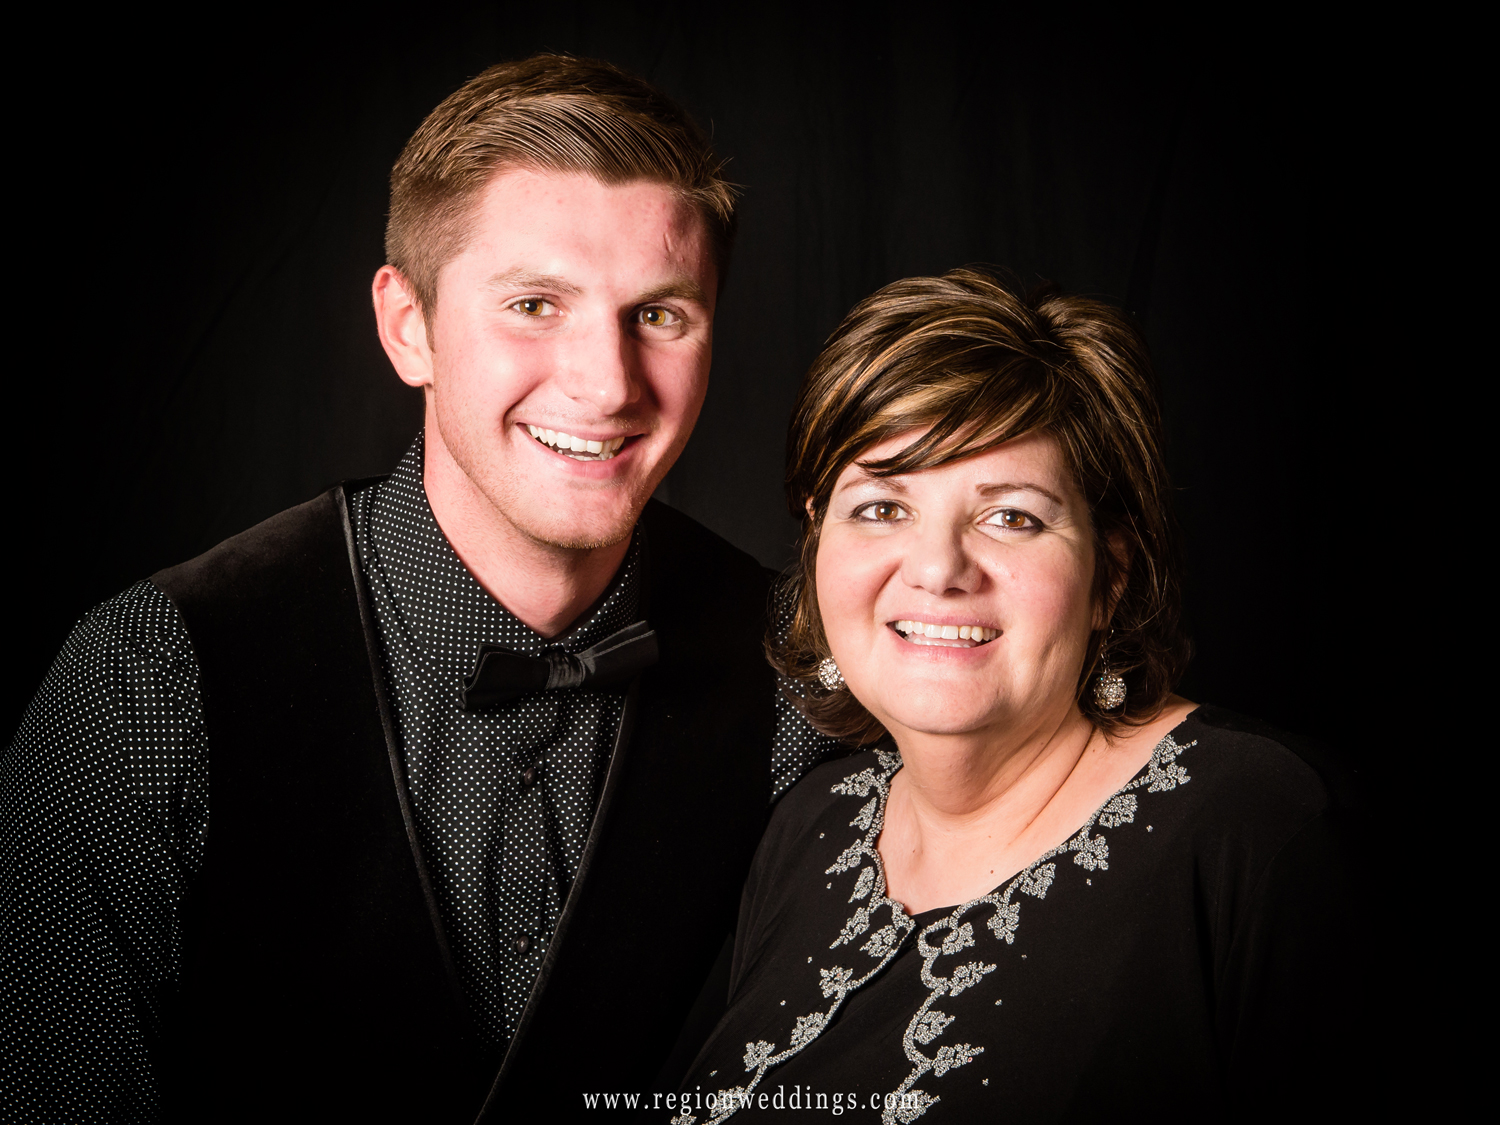 A mom poses with her son for a portrait against a black backdrop at a wedding reception banquet hall.